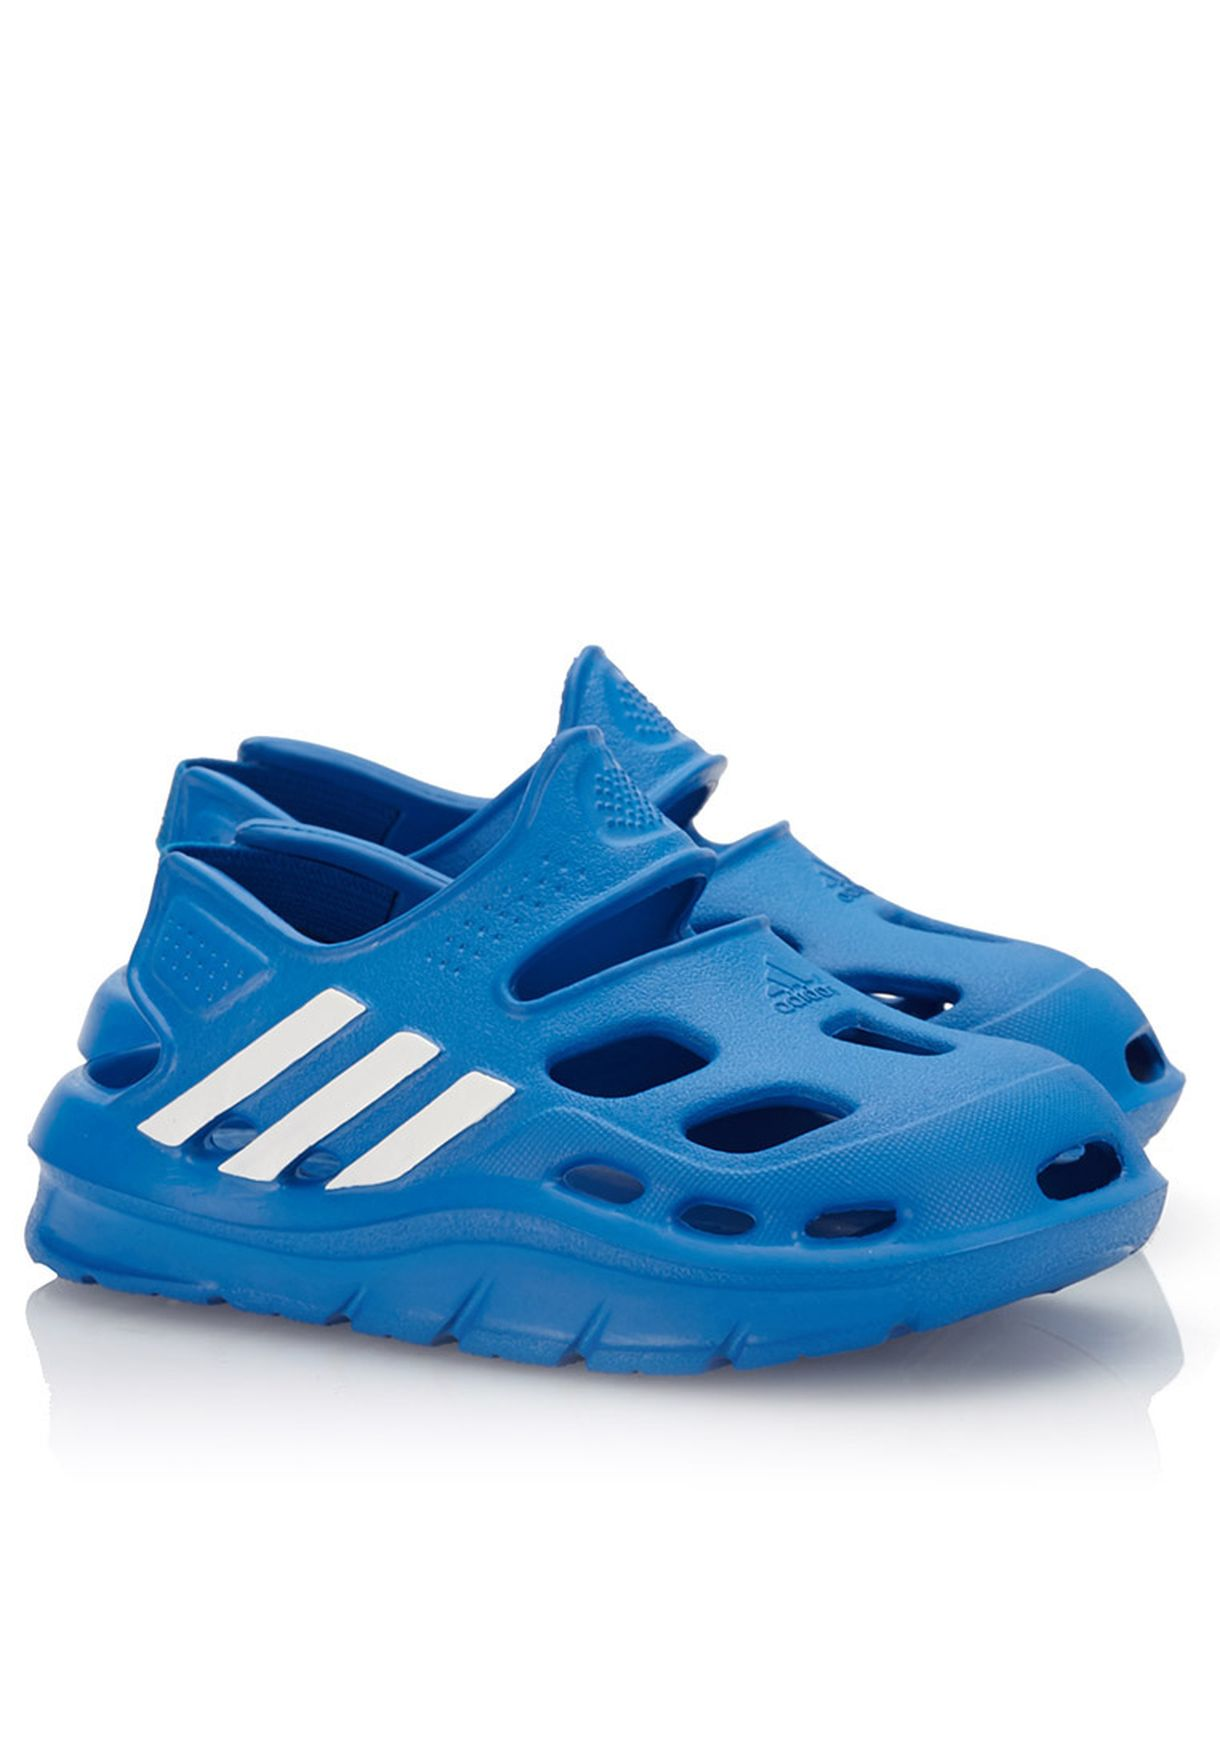 55ac604e2aa5 Shop adidas blue Varisol Sandals D67308 for Kids in Qatar - AD476SH13NHM